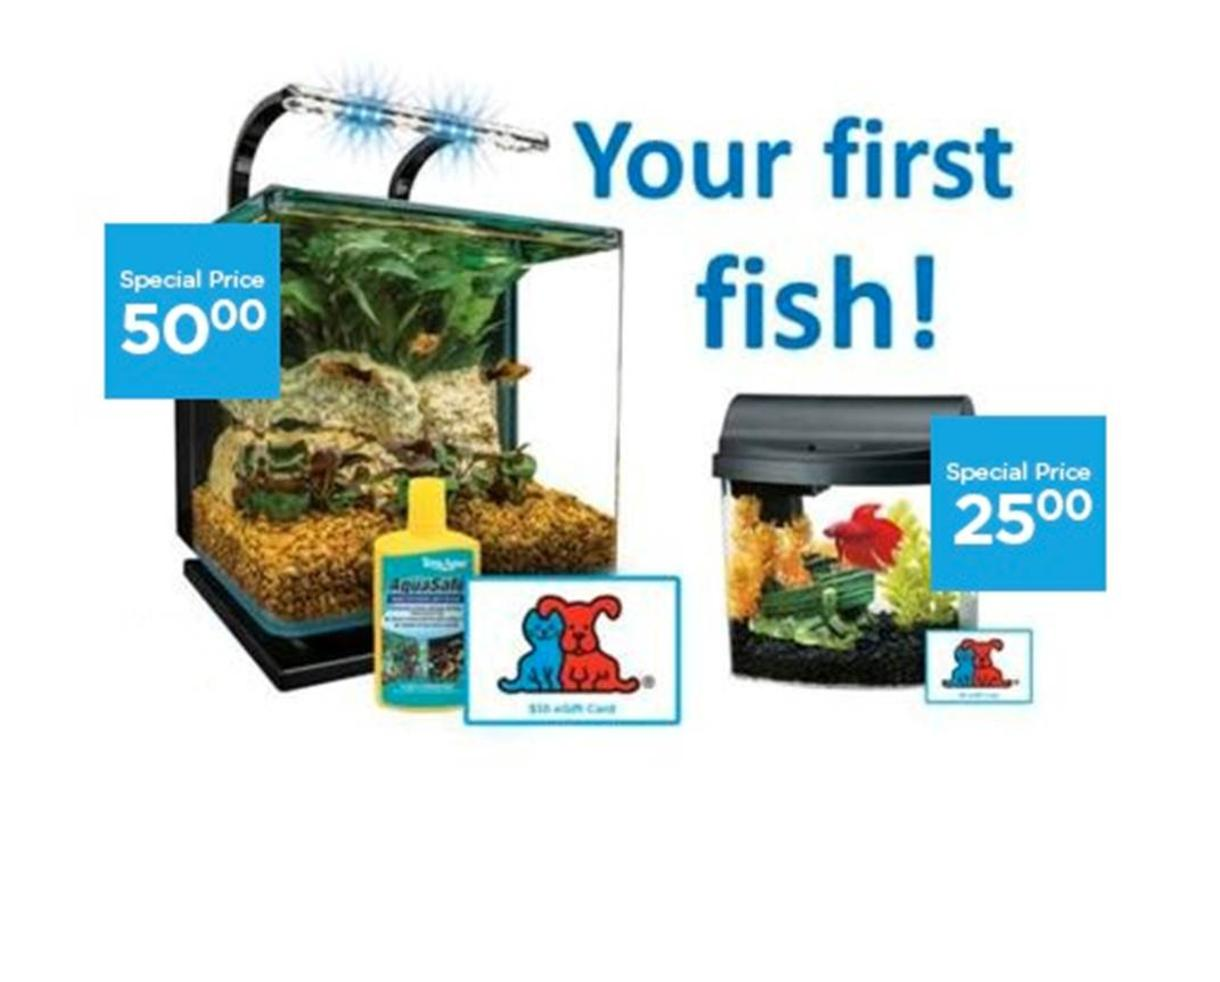 Aquarium Starter Kit From Petco Includes Free Shipping